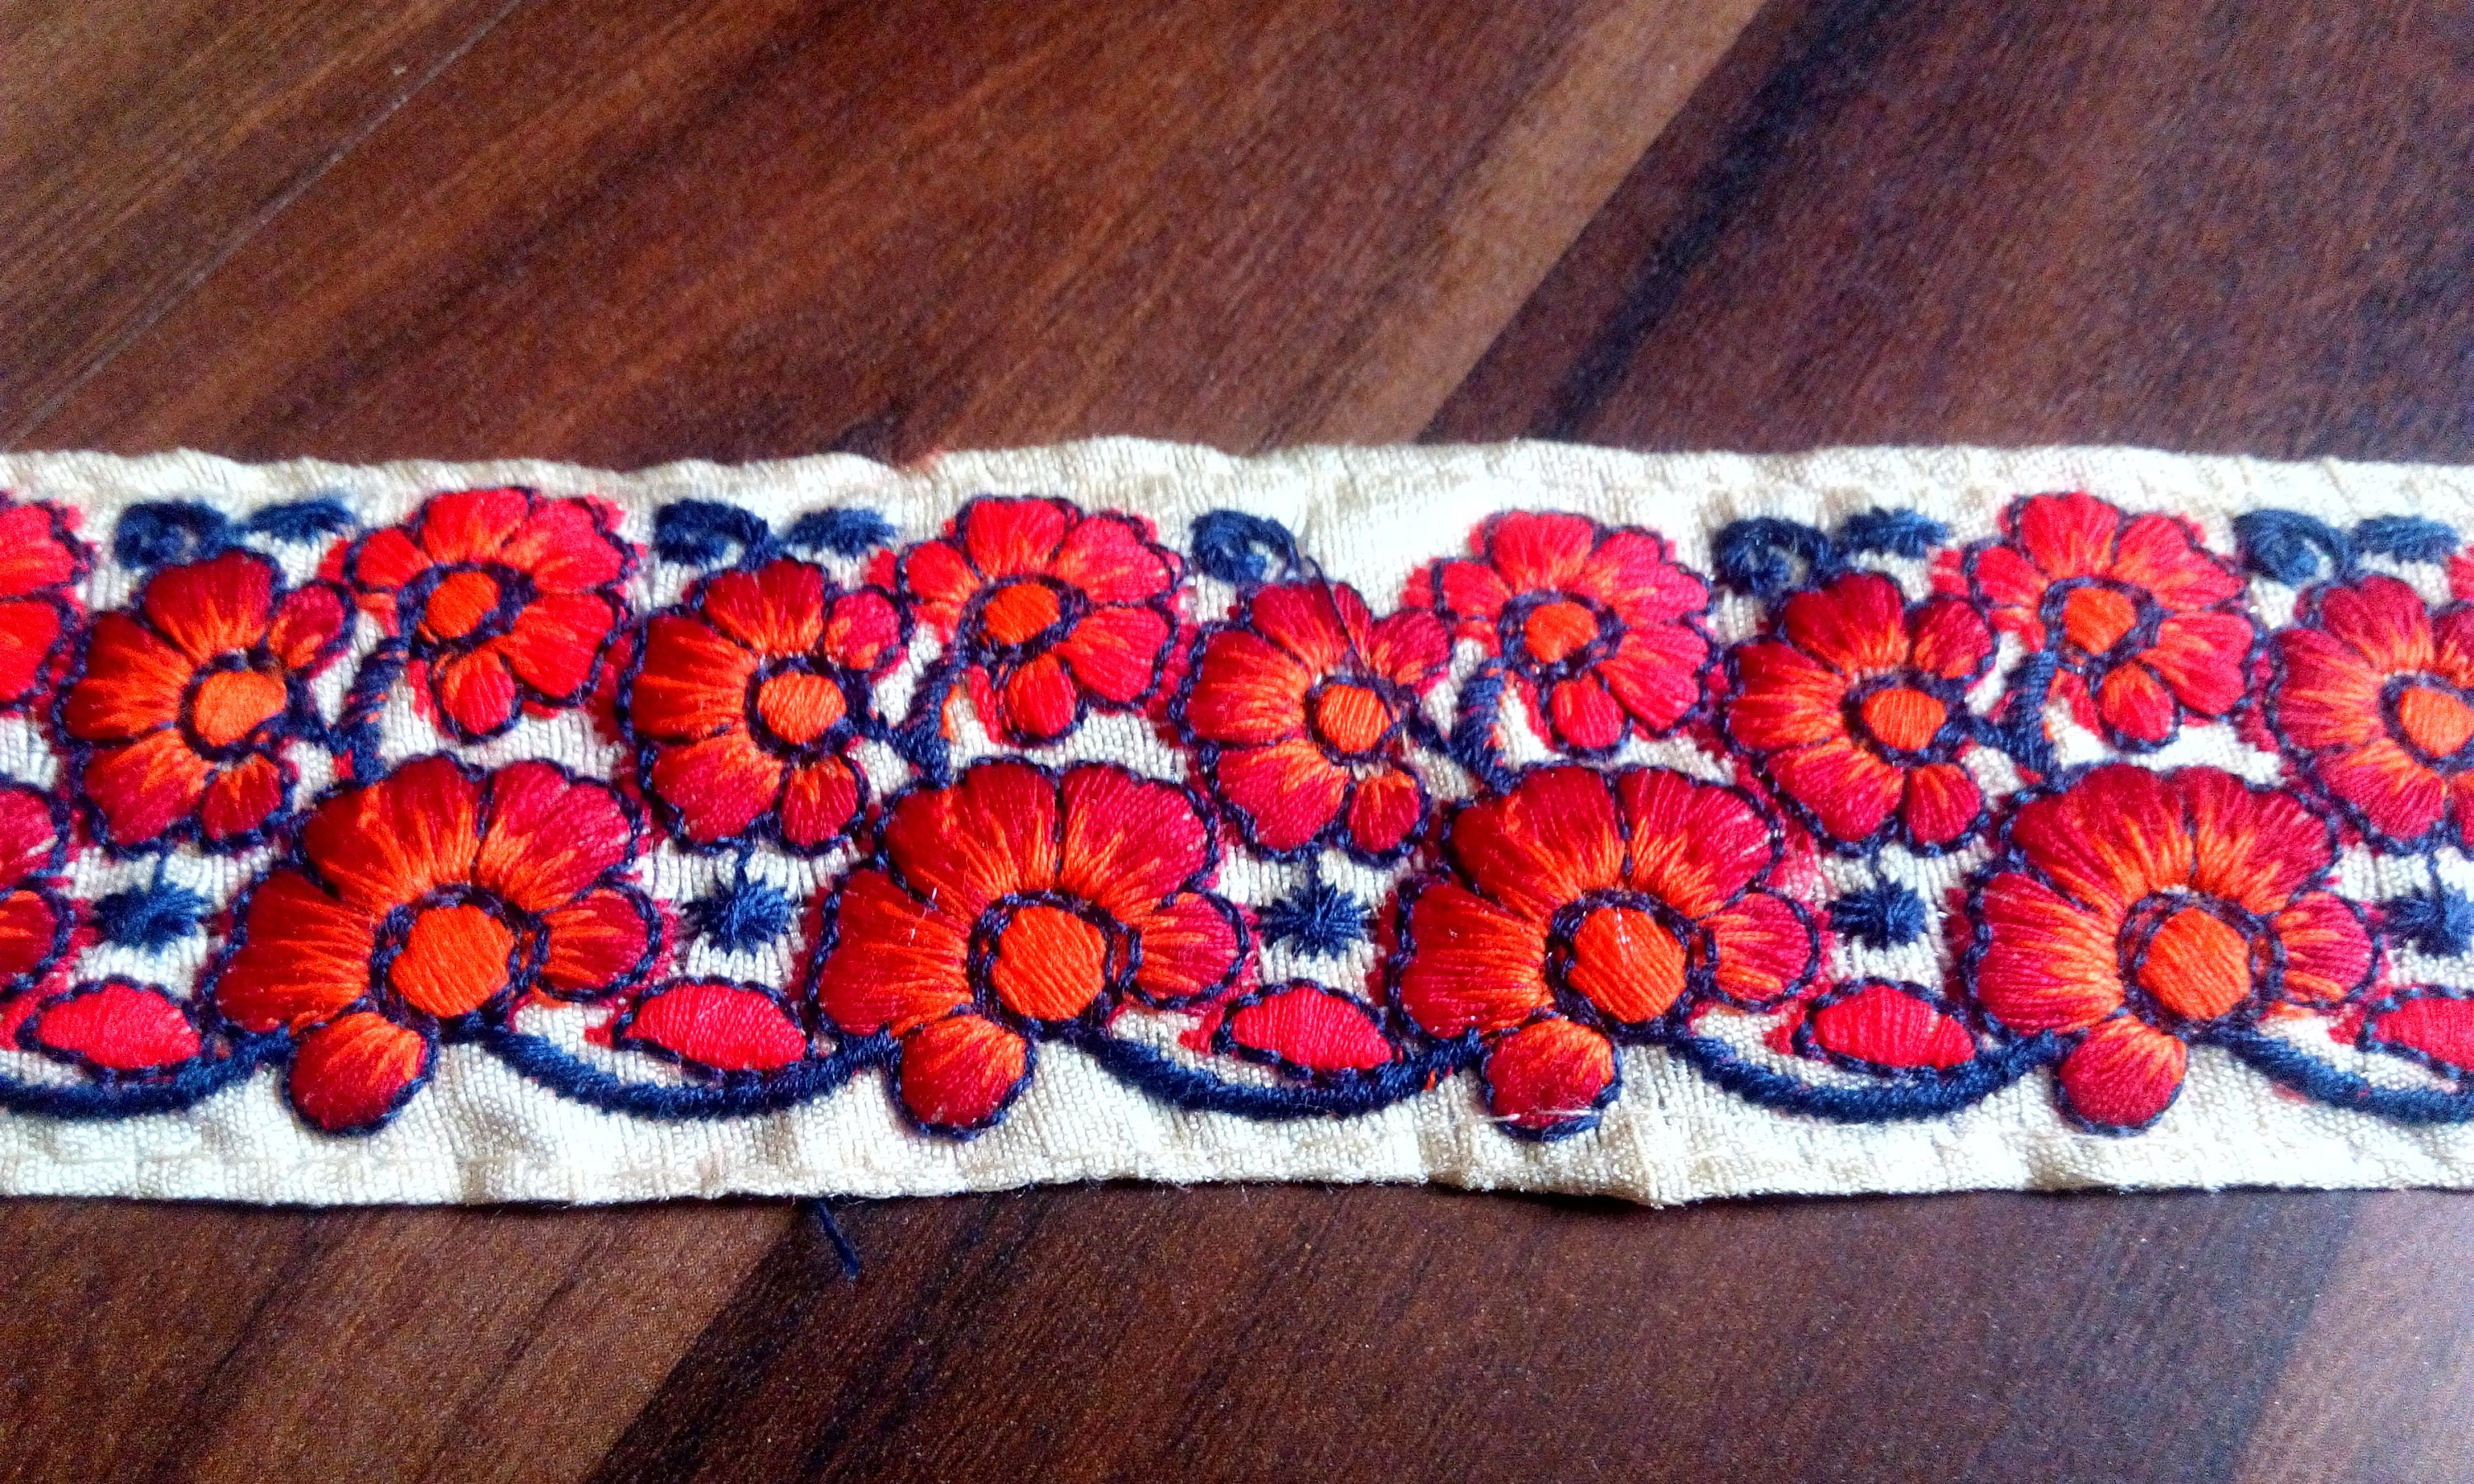 Decorative Fabric Trim Red Fabric Embroidered Trim By The Yard Indian Laces And Trims